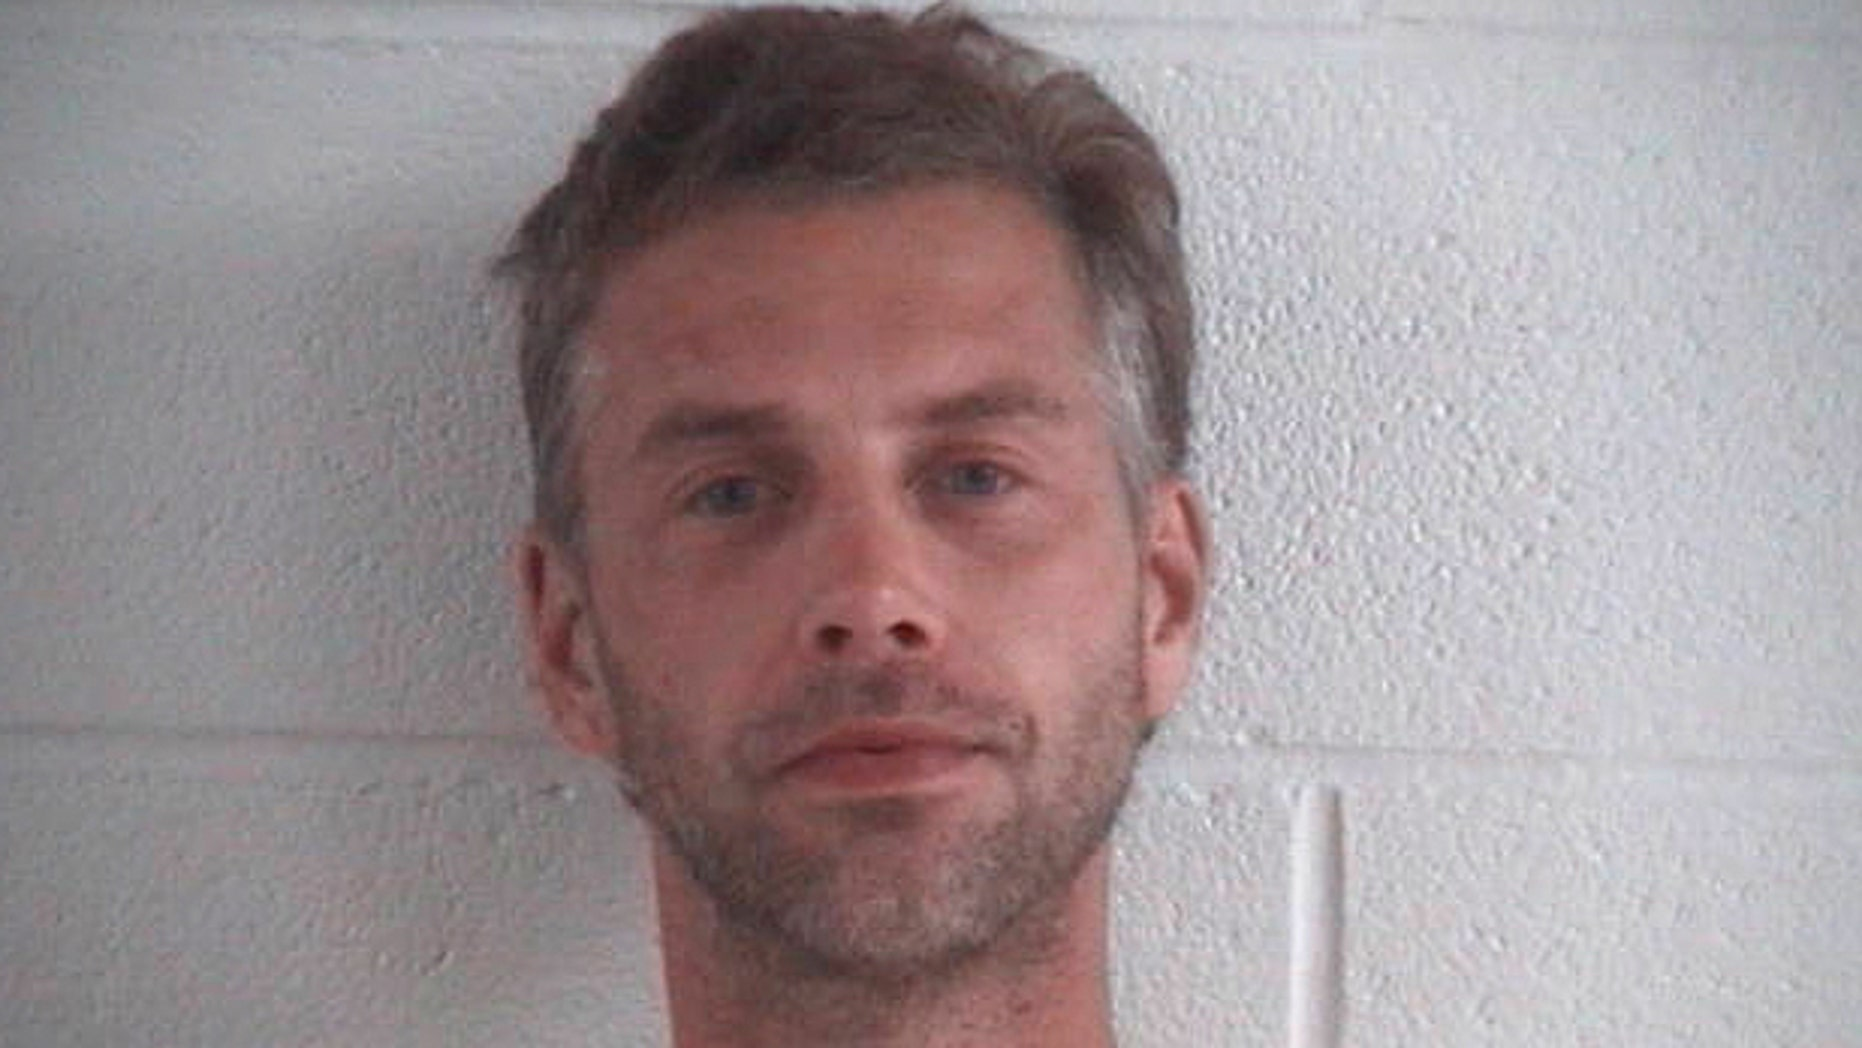 This photo provided by Ashland County Sheriff Office shows Shawn M. Grate.   Grate, was arrested Tuesday, Sept. 13, 2016, in Ashland, Ohio in connection to the investigation of a rescued abductee and the discovery of the remains of two people in the home where he was arrested. (Ashland County Sheriff Office /The Times Gazette via AP)